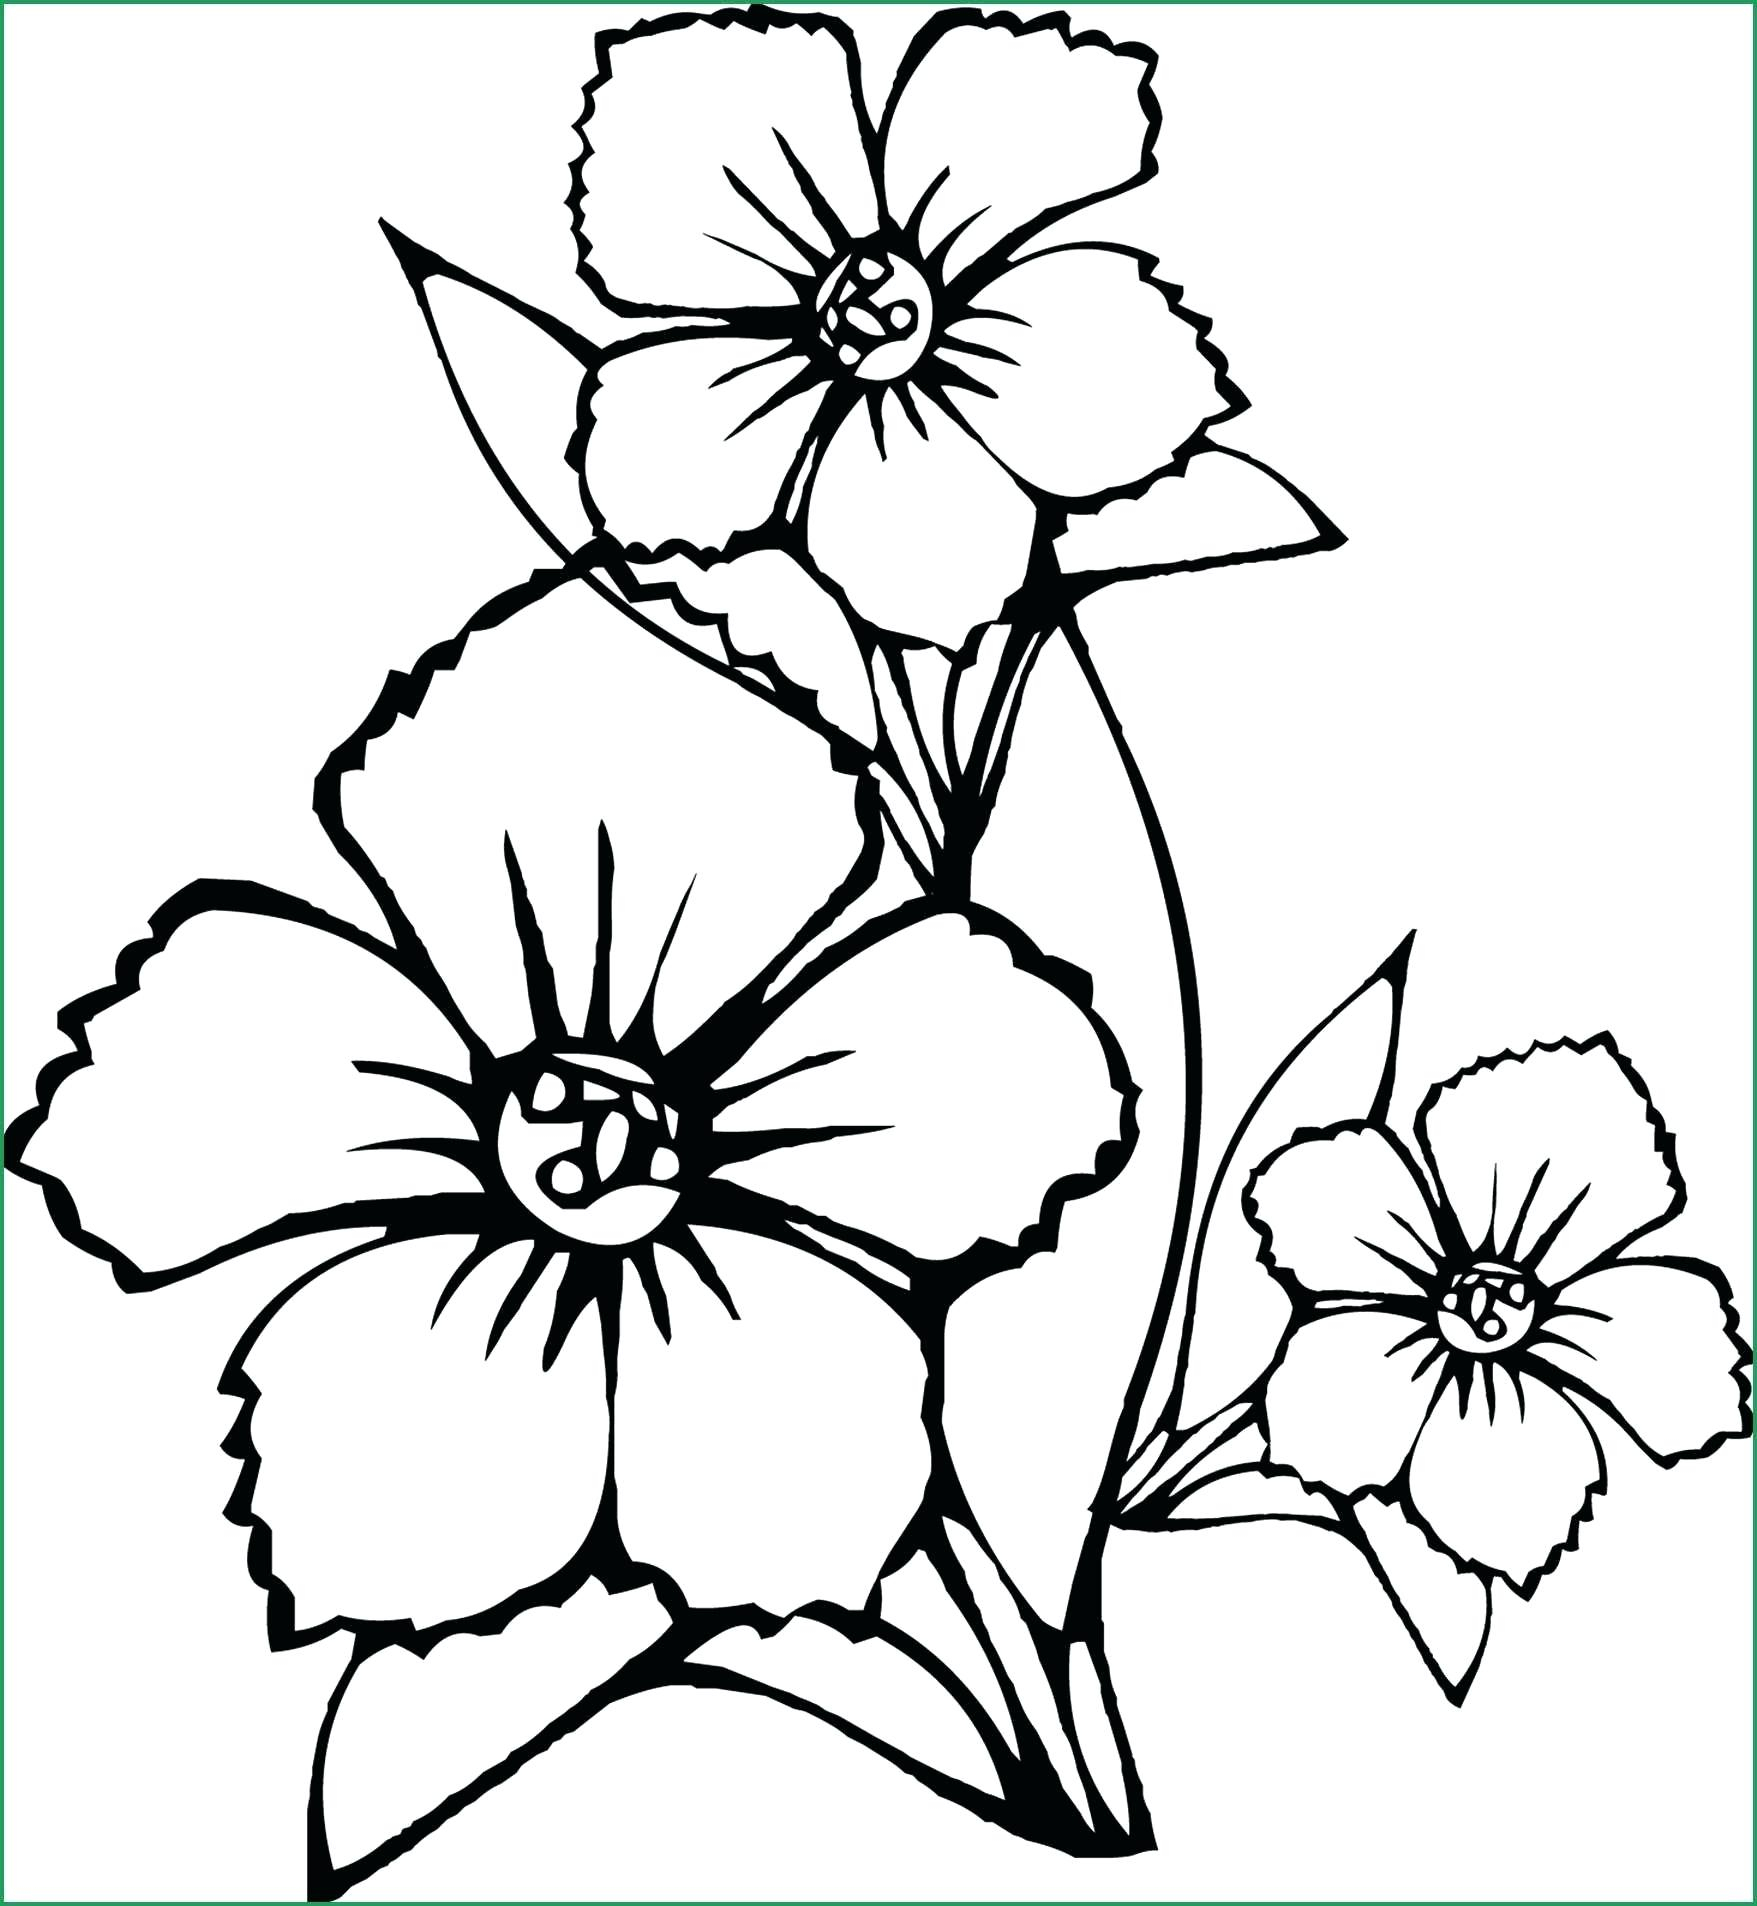 Coloring Pages : Coloring Awesome Stress Relief Flower Image à Mandala Fée